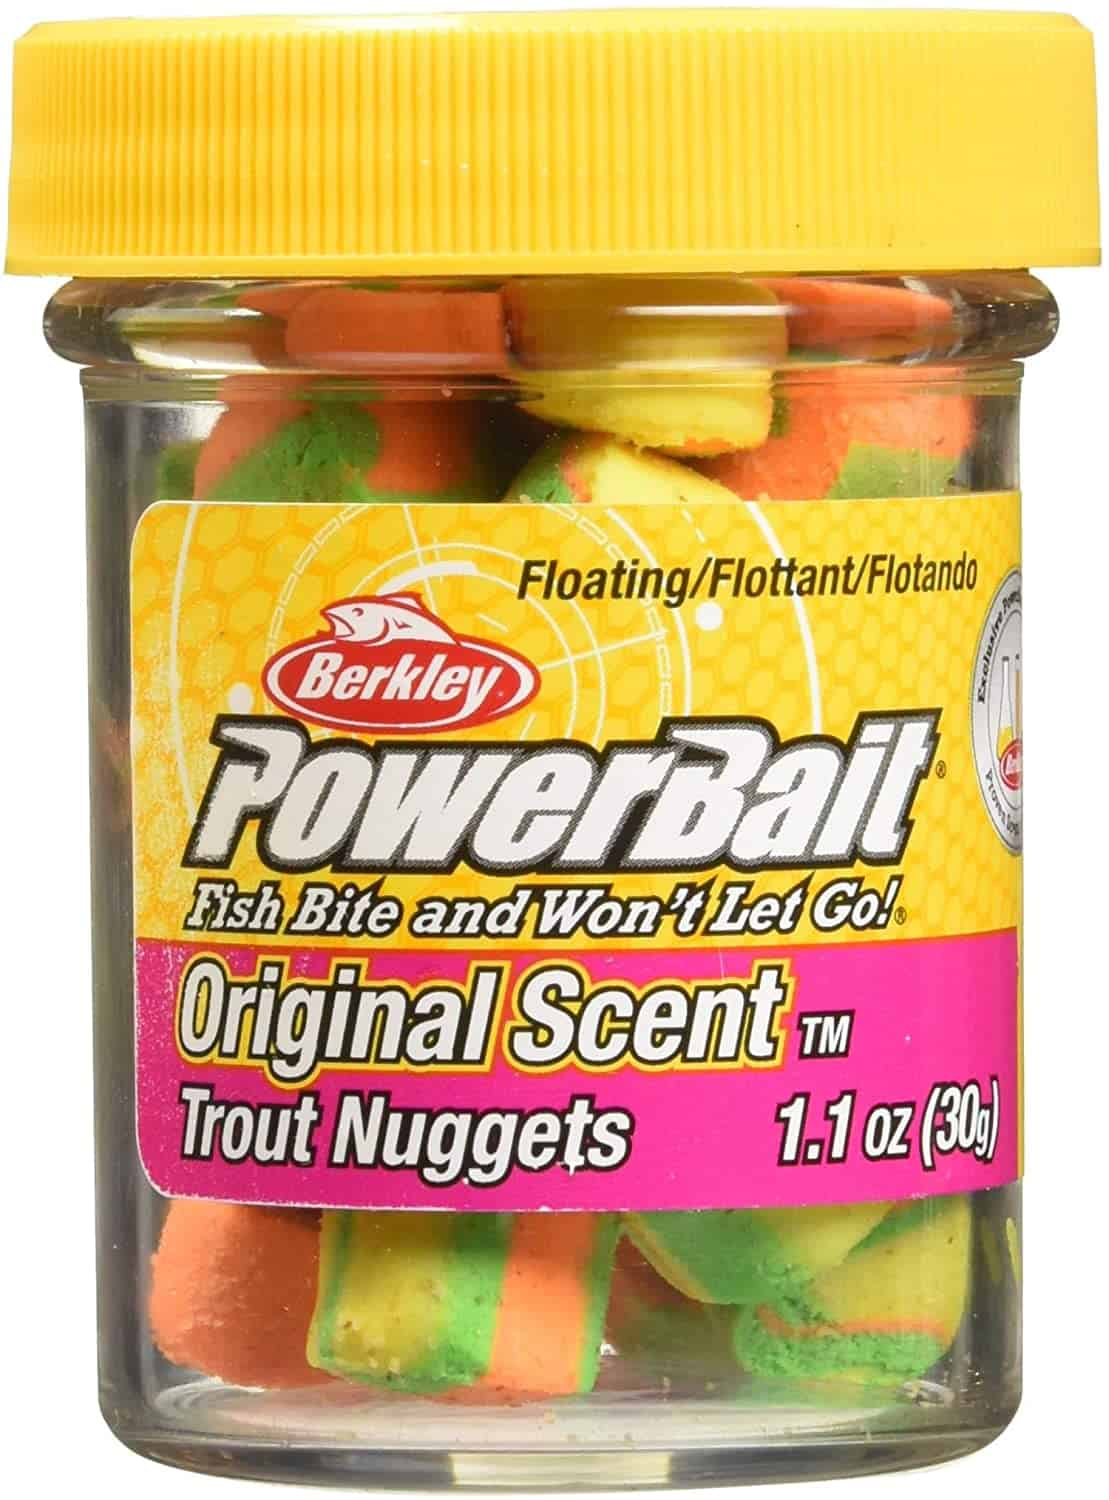 Powerbait Nuggets by Berkley